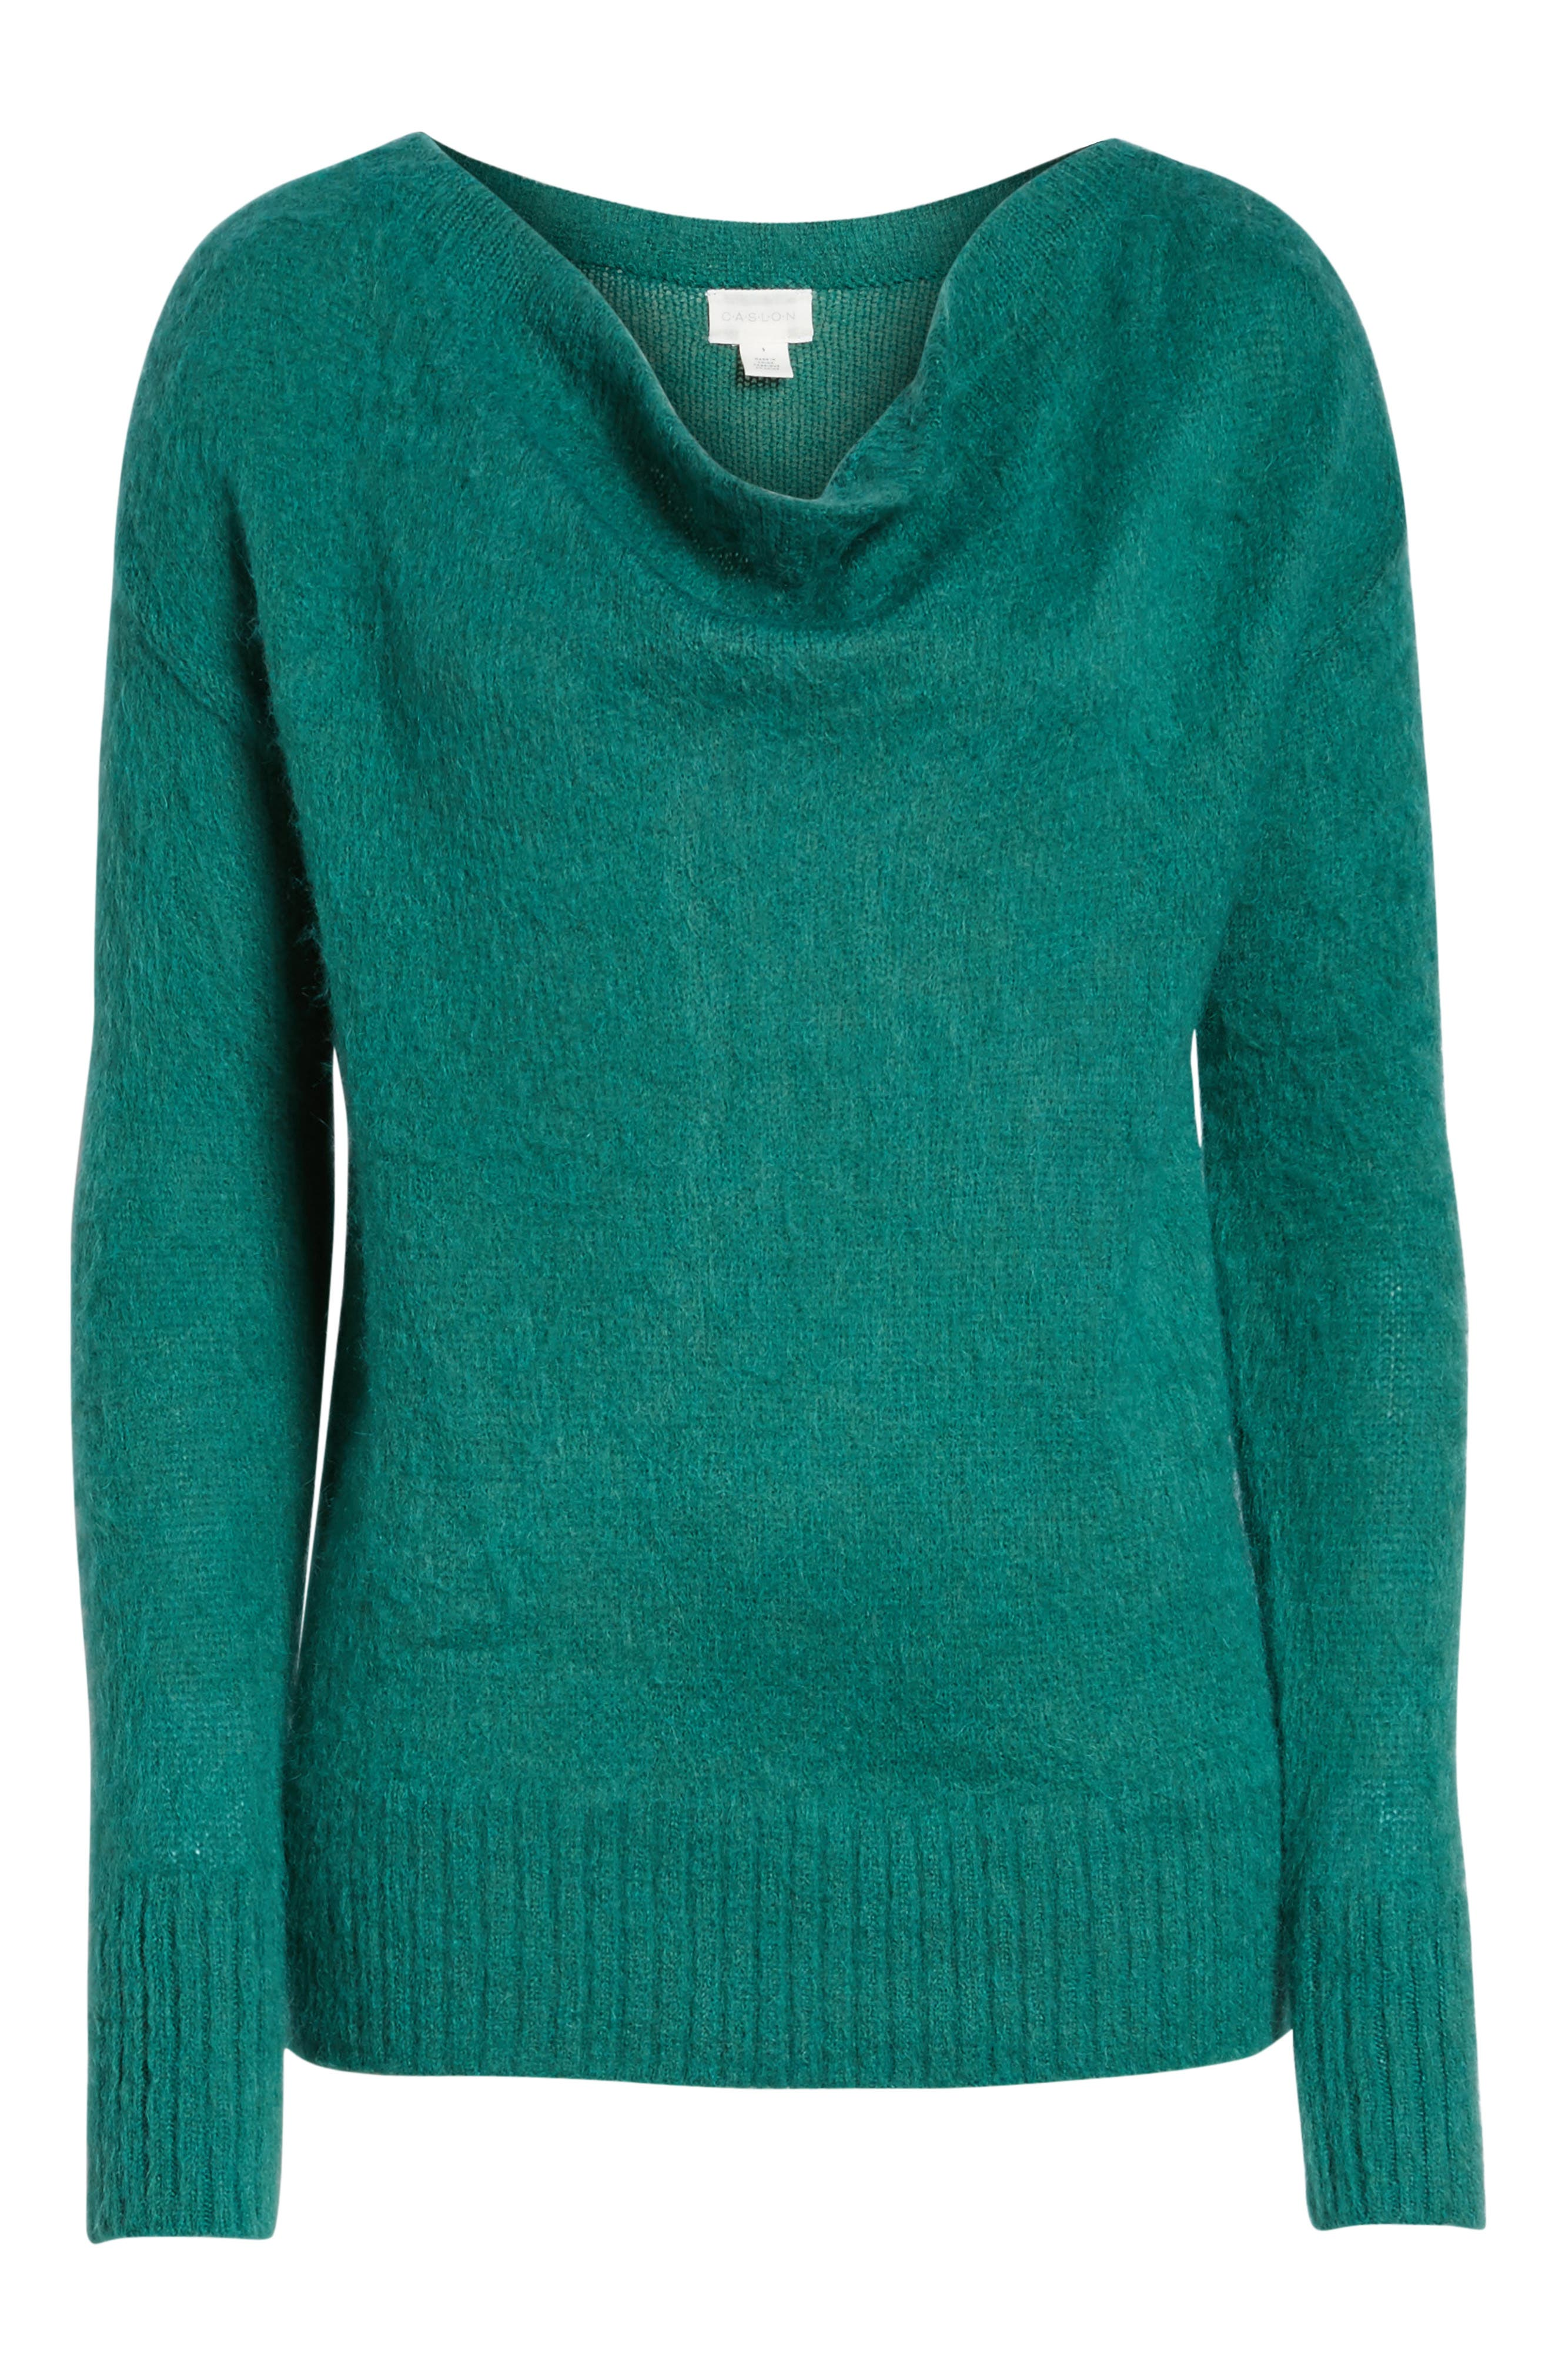 Long Sleeve Brushed Sweater,                             Alternate thumbnail 33, color,